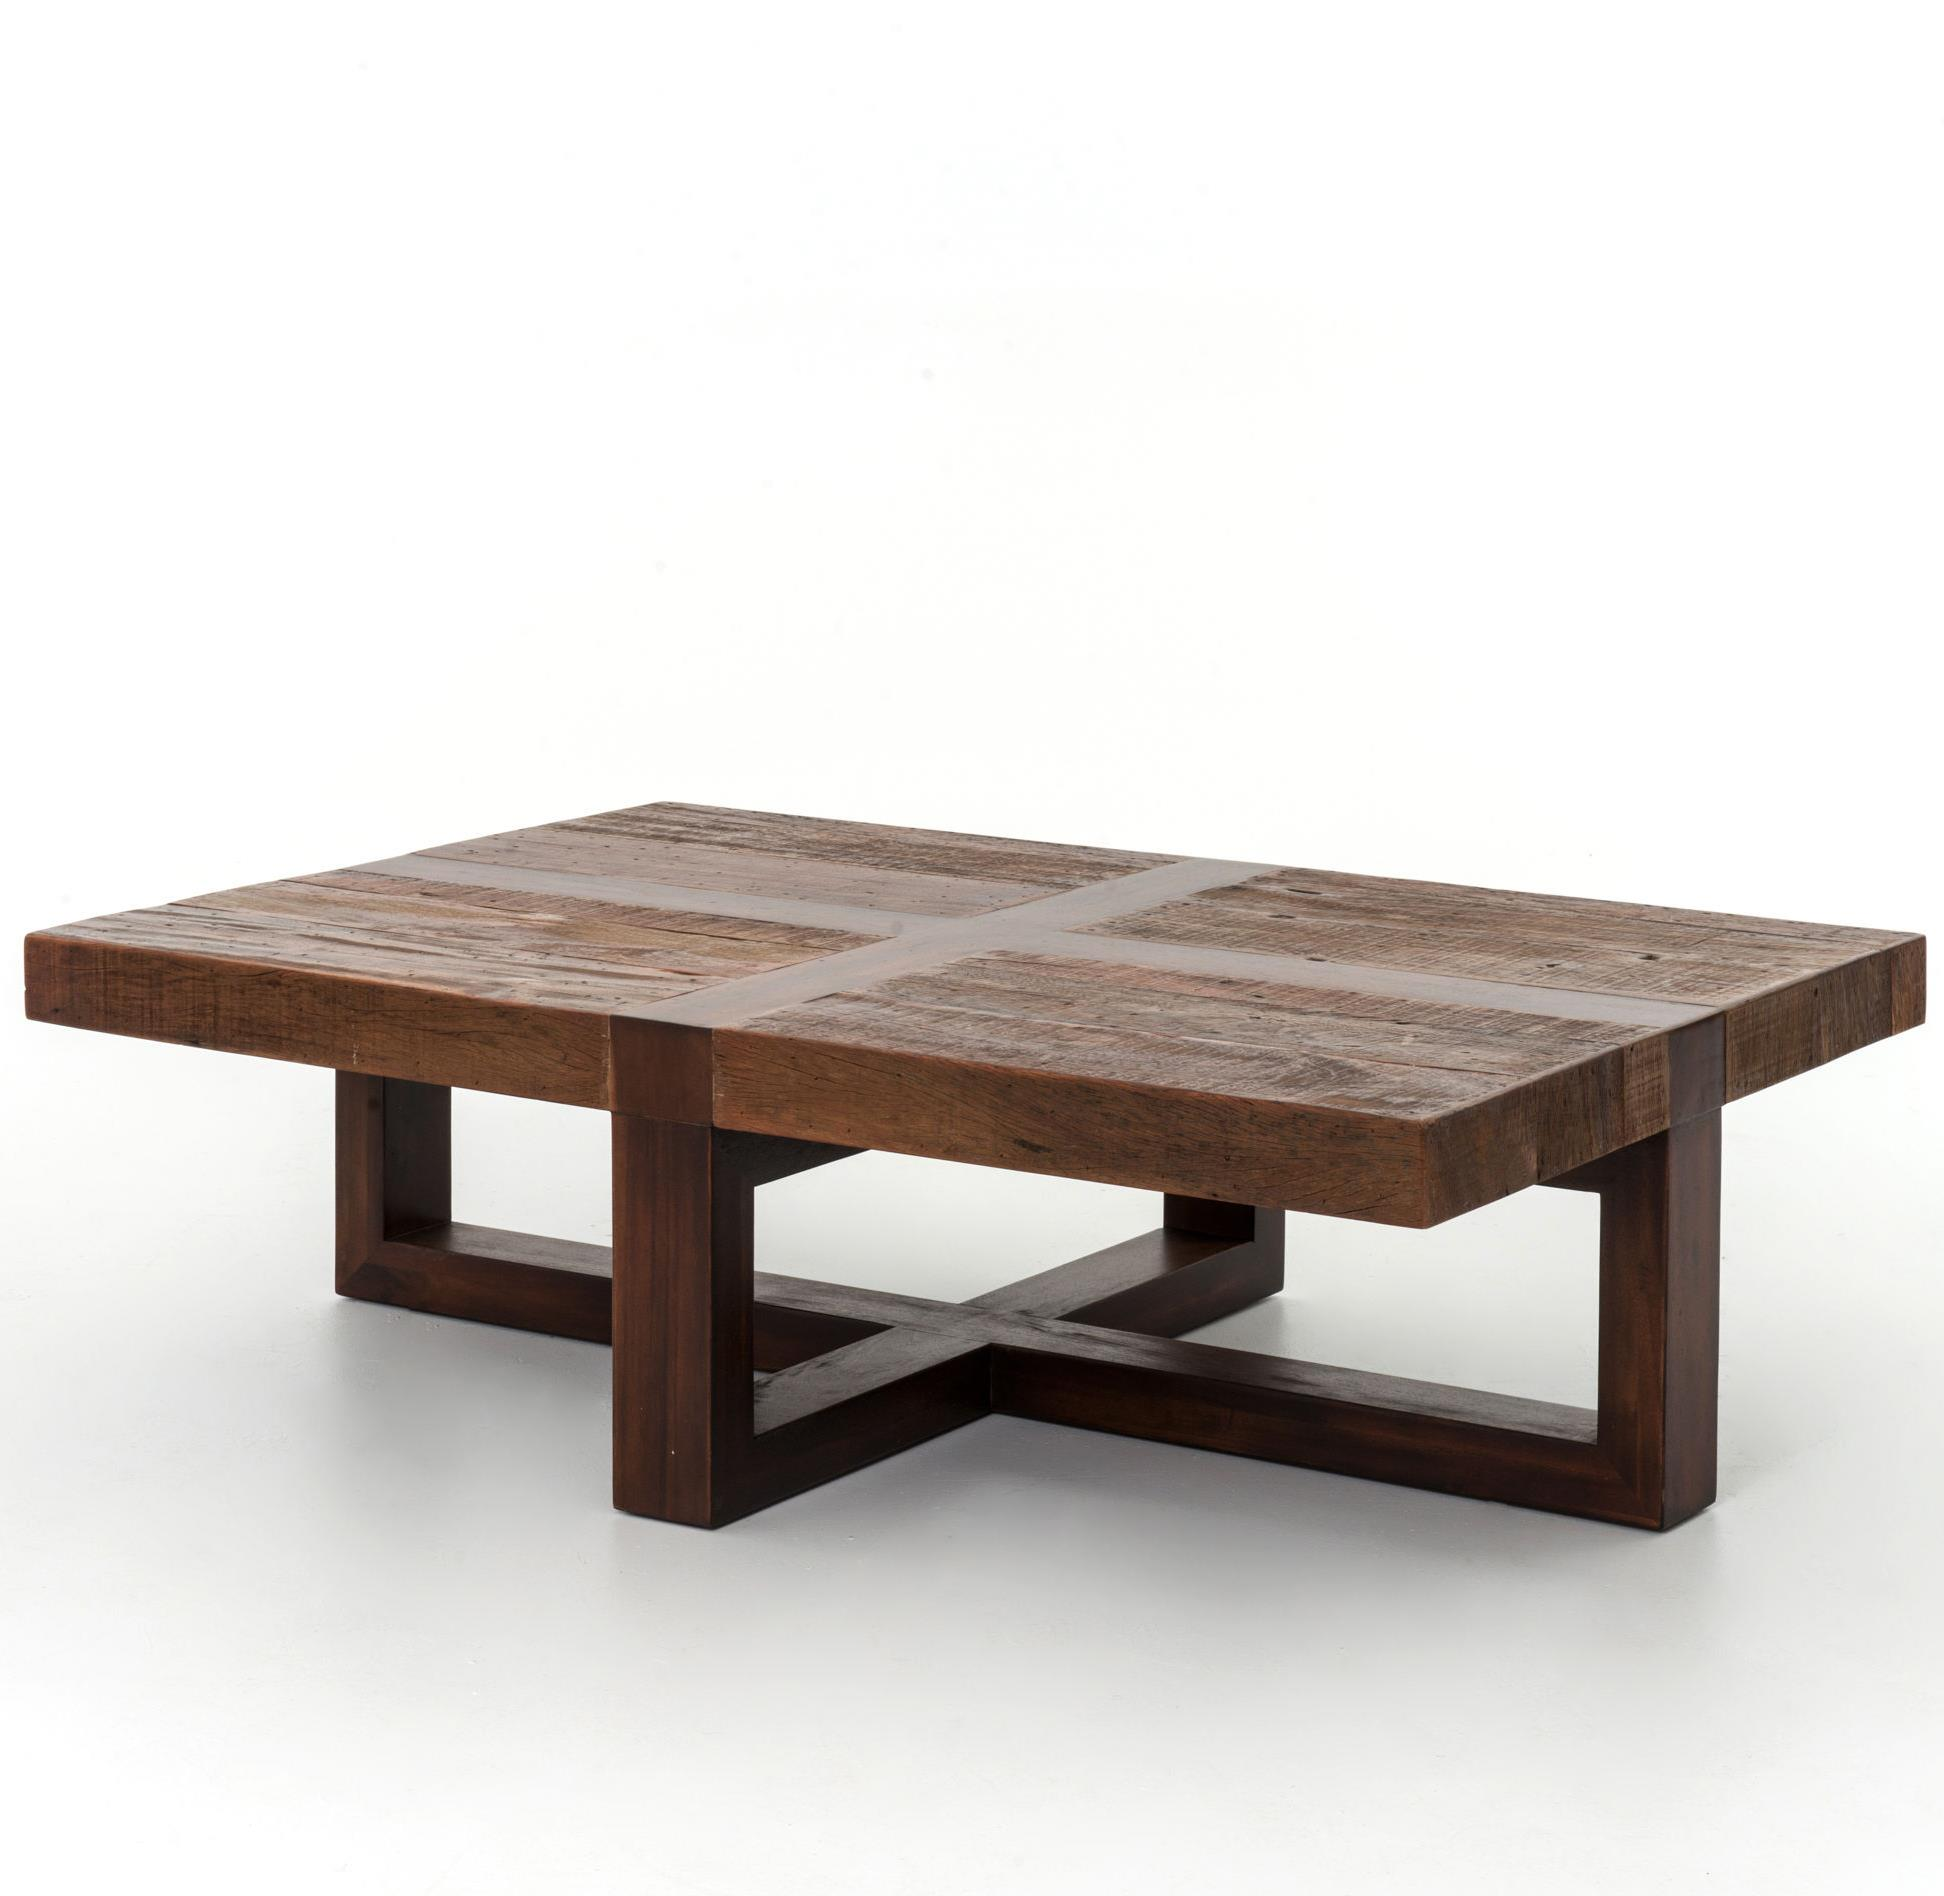 Reclaimed Bryan Coffee Table. By Four Hands